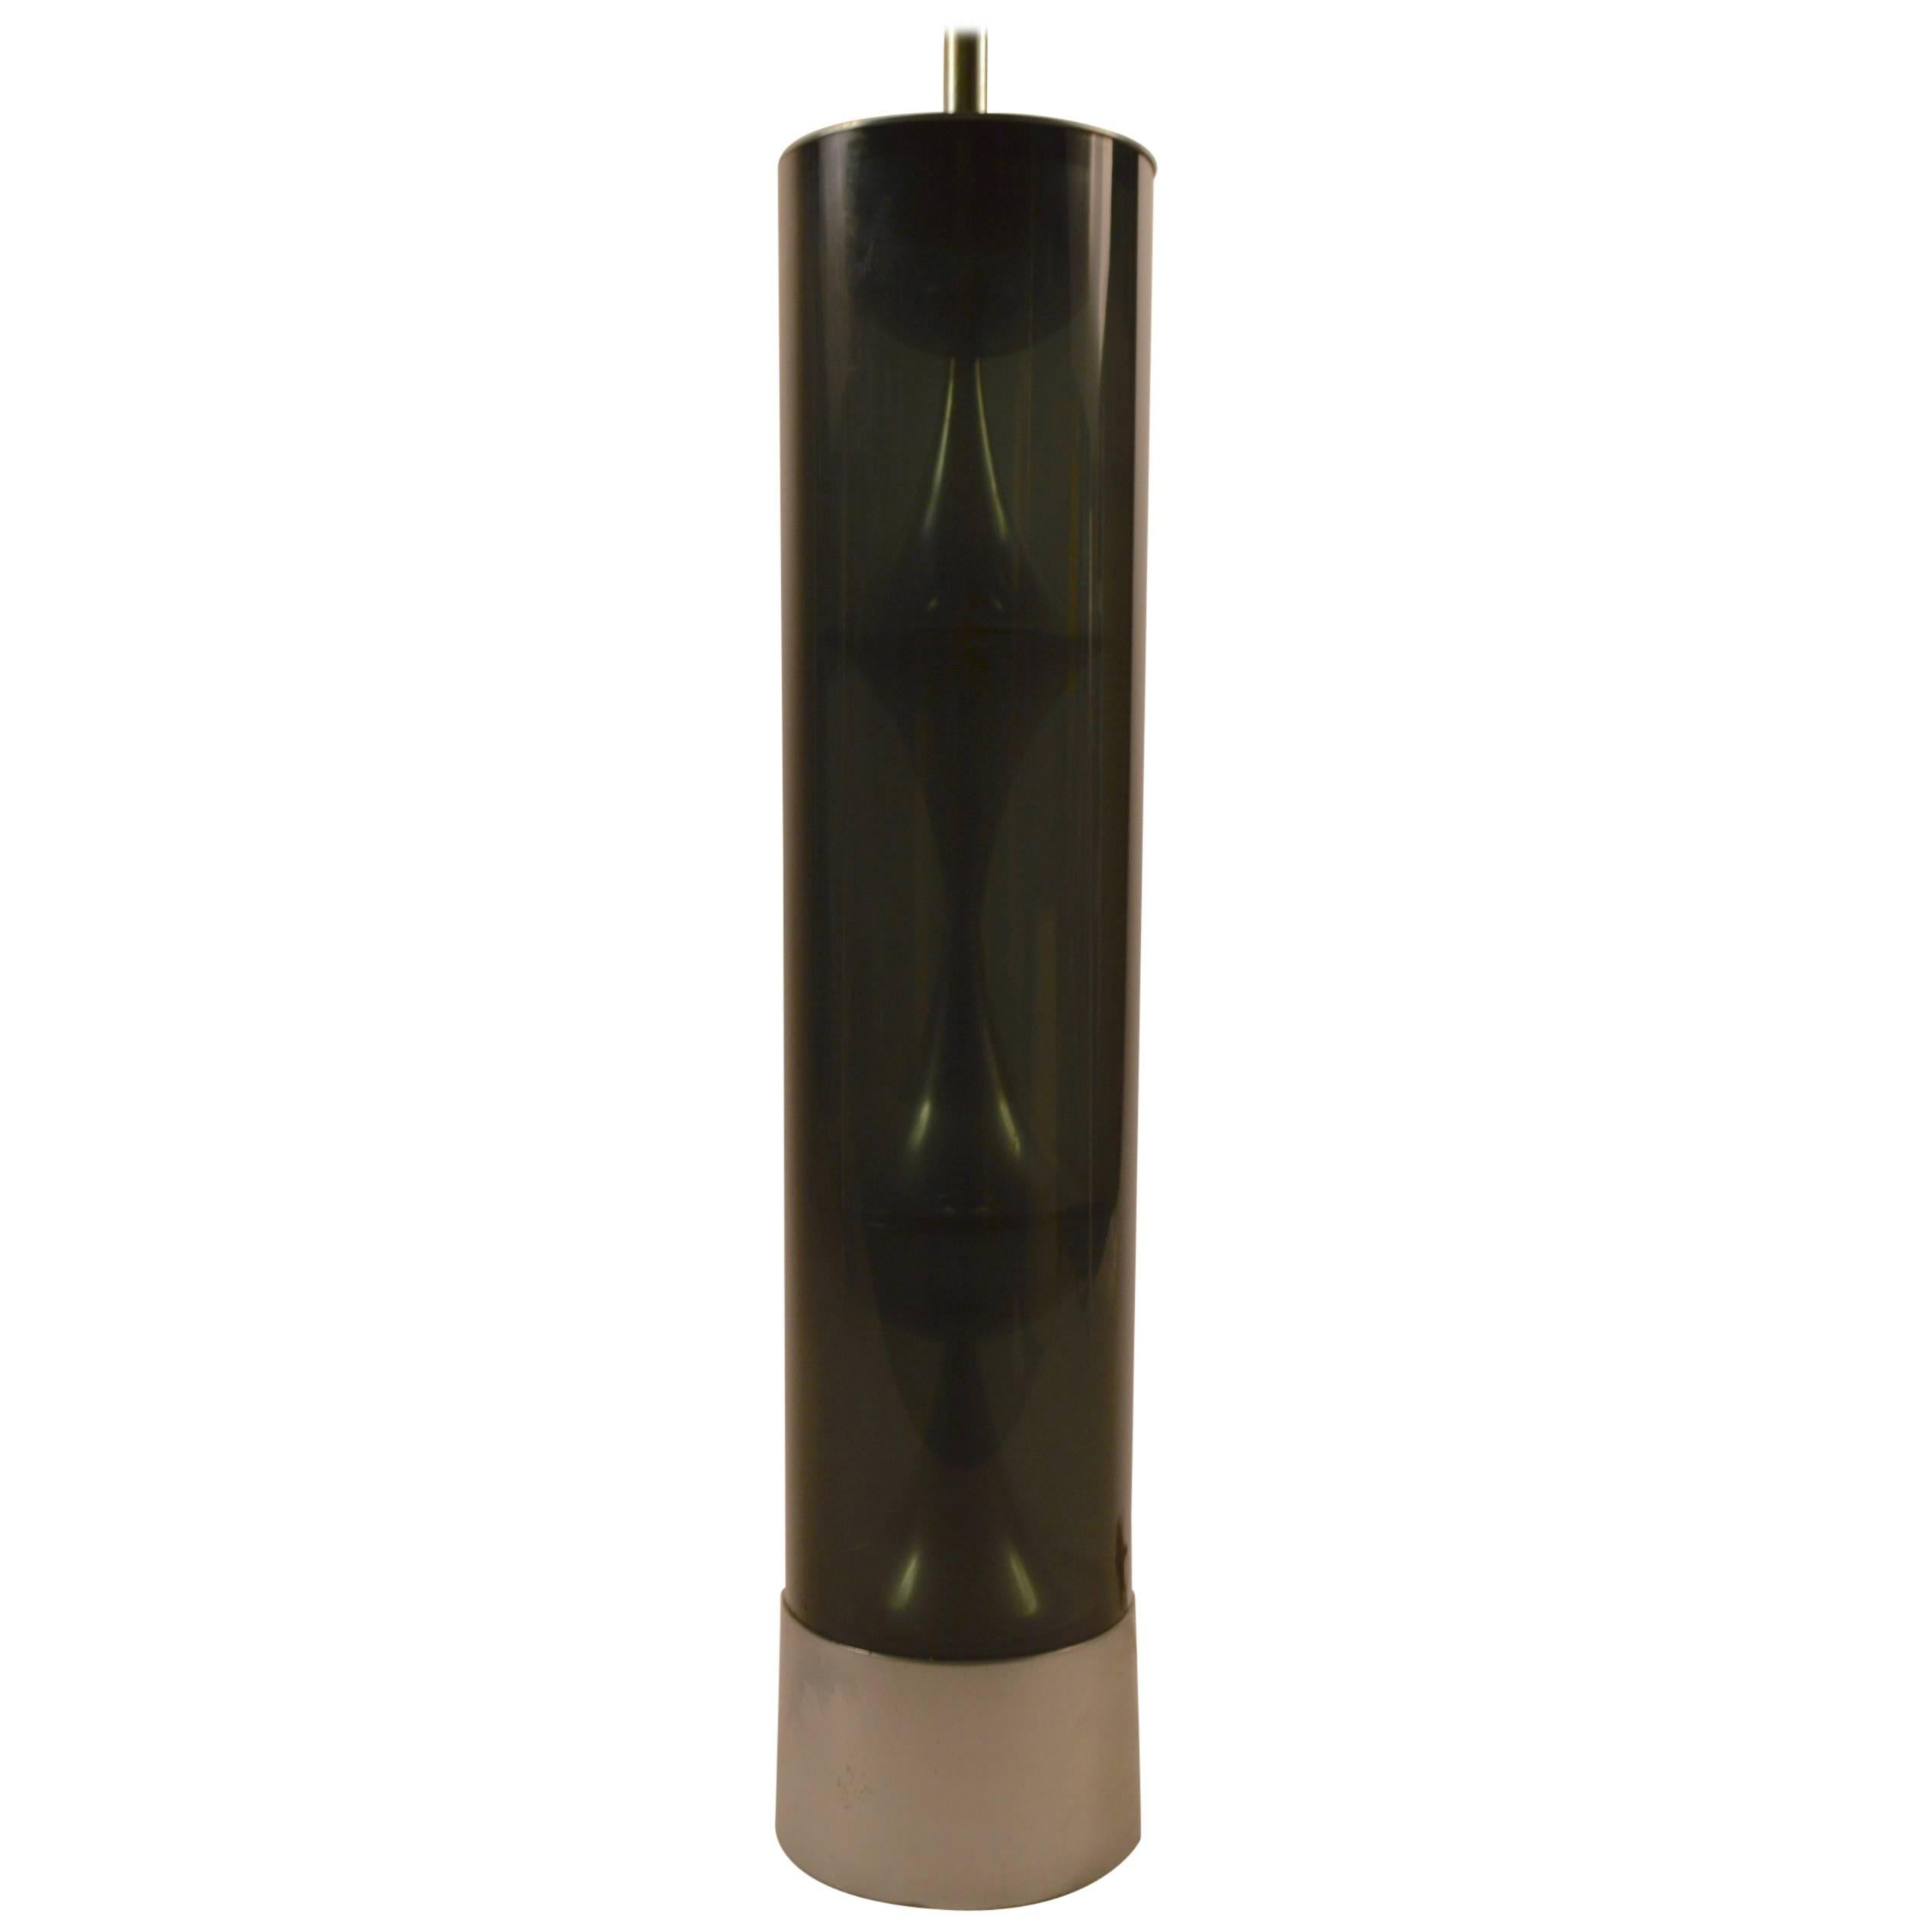 Mod Cylindrical  Smoked Lucite Table Lamp by Mutual Sunset Lamp Co